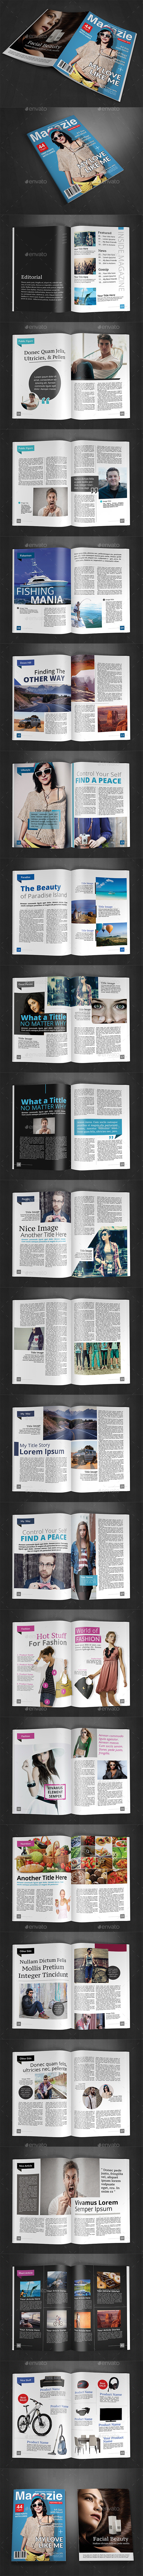 GraphicRiver A4 Magazine Template Vol.7 9097812